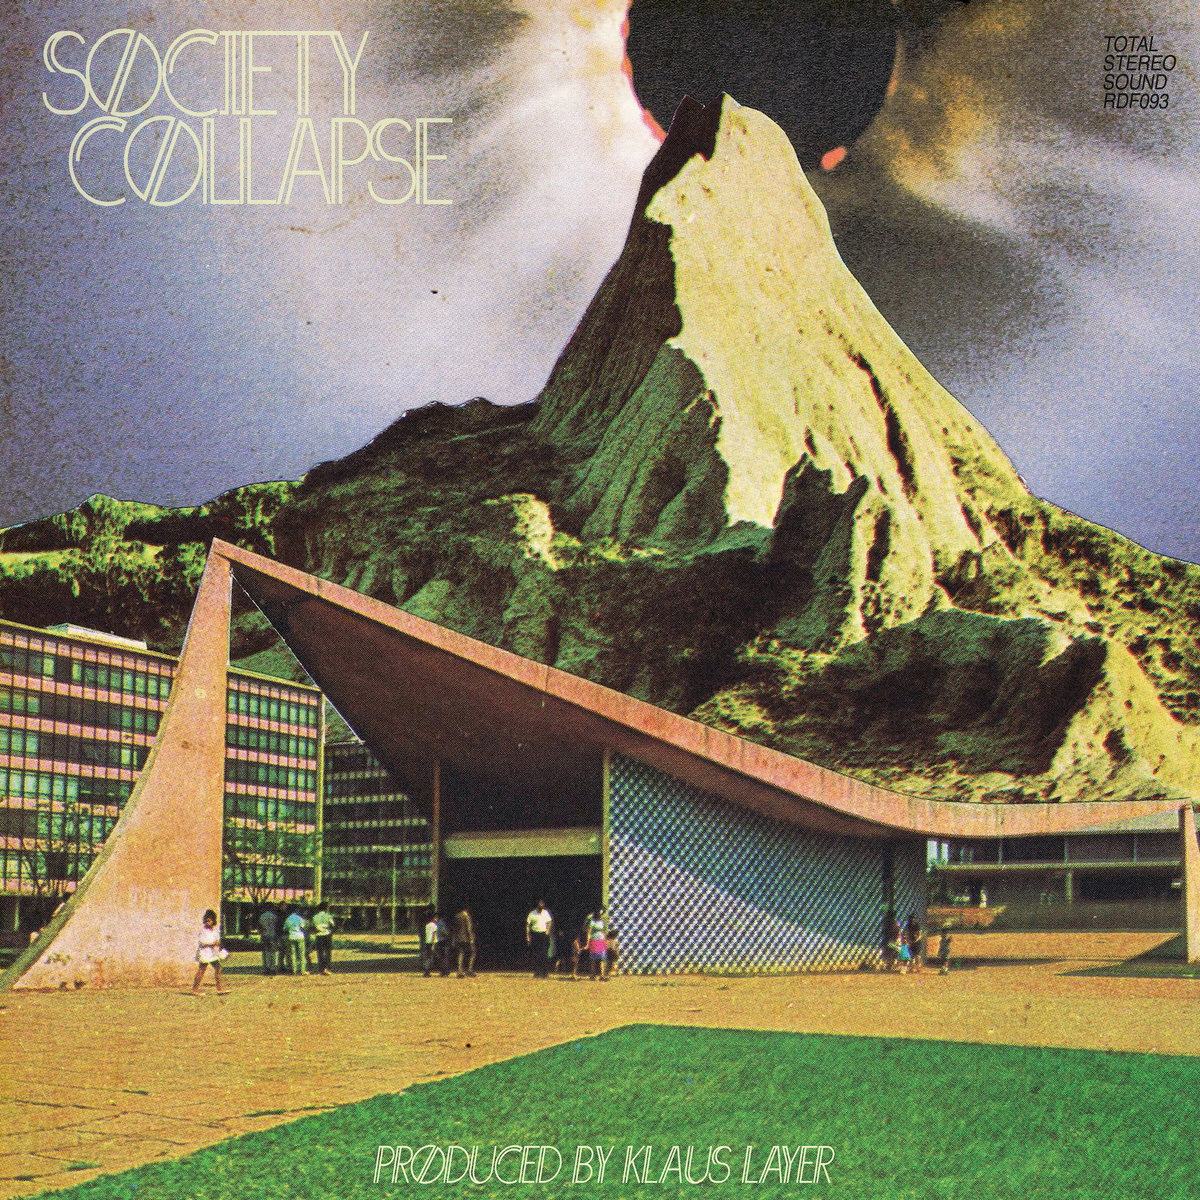 Klaus Layers - Society Collapse (Redefinition) $24.99